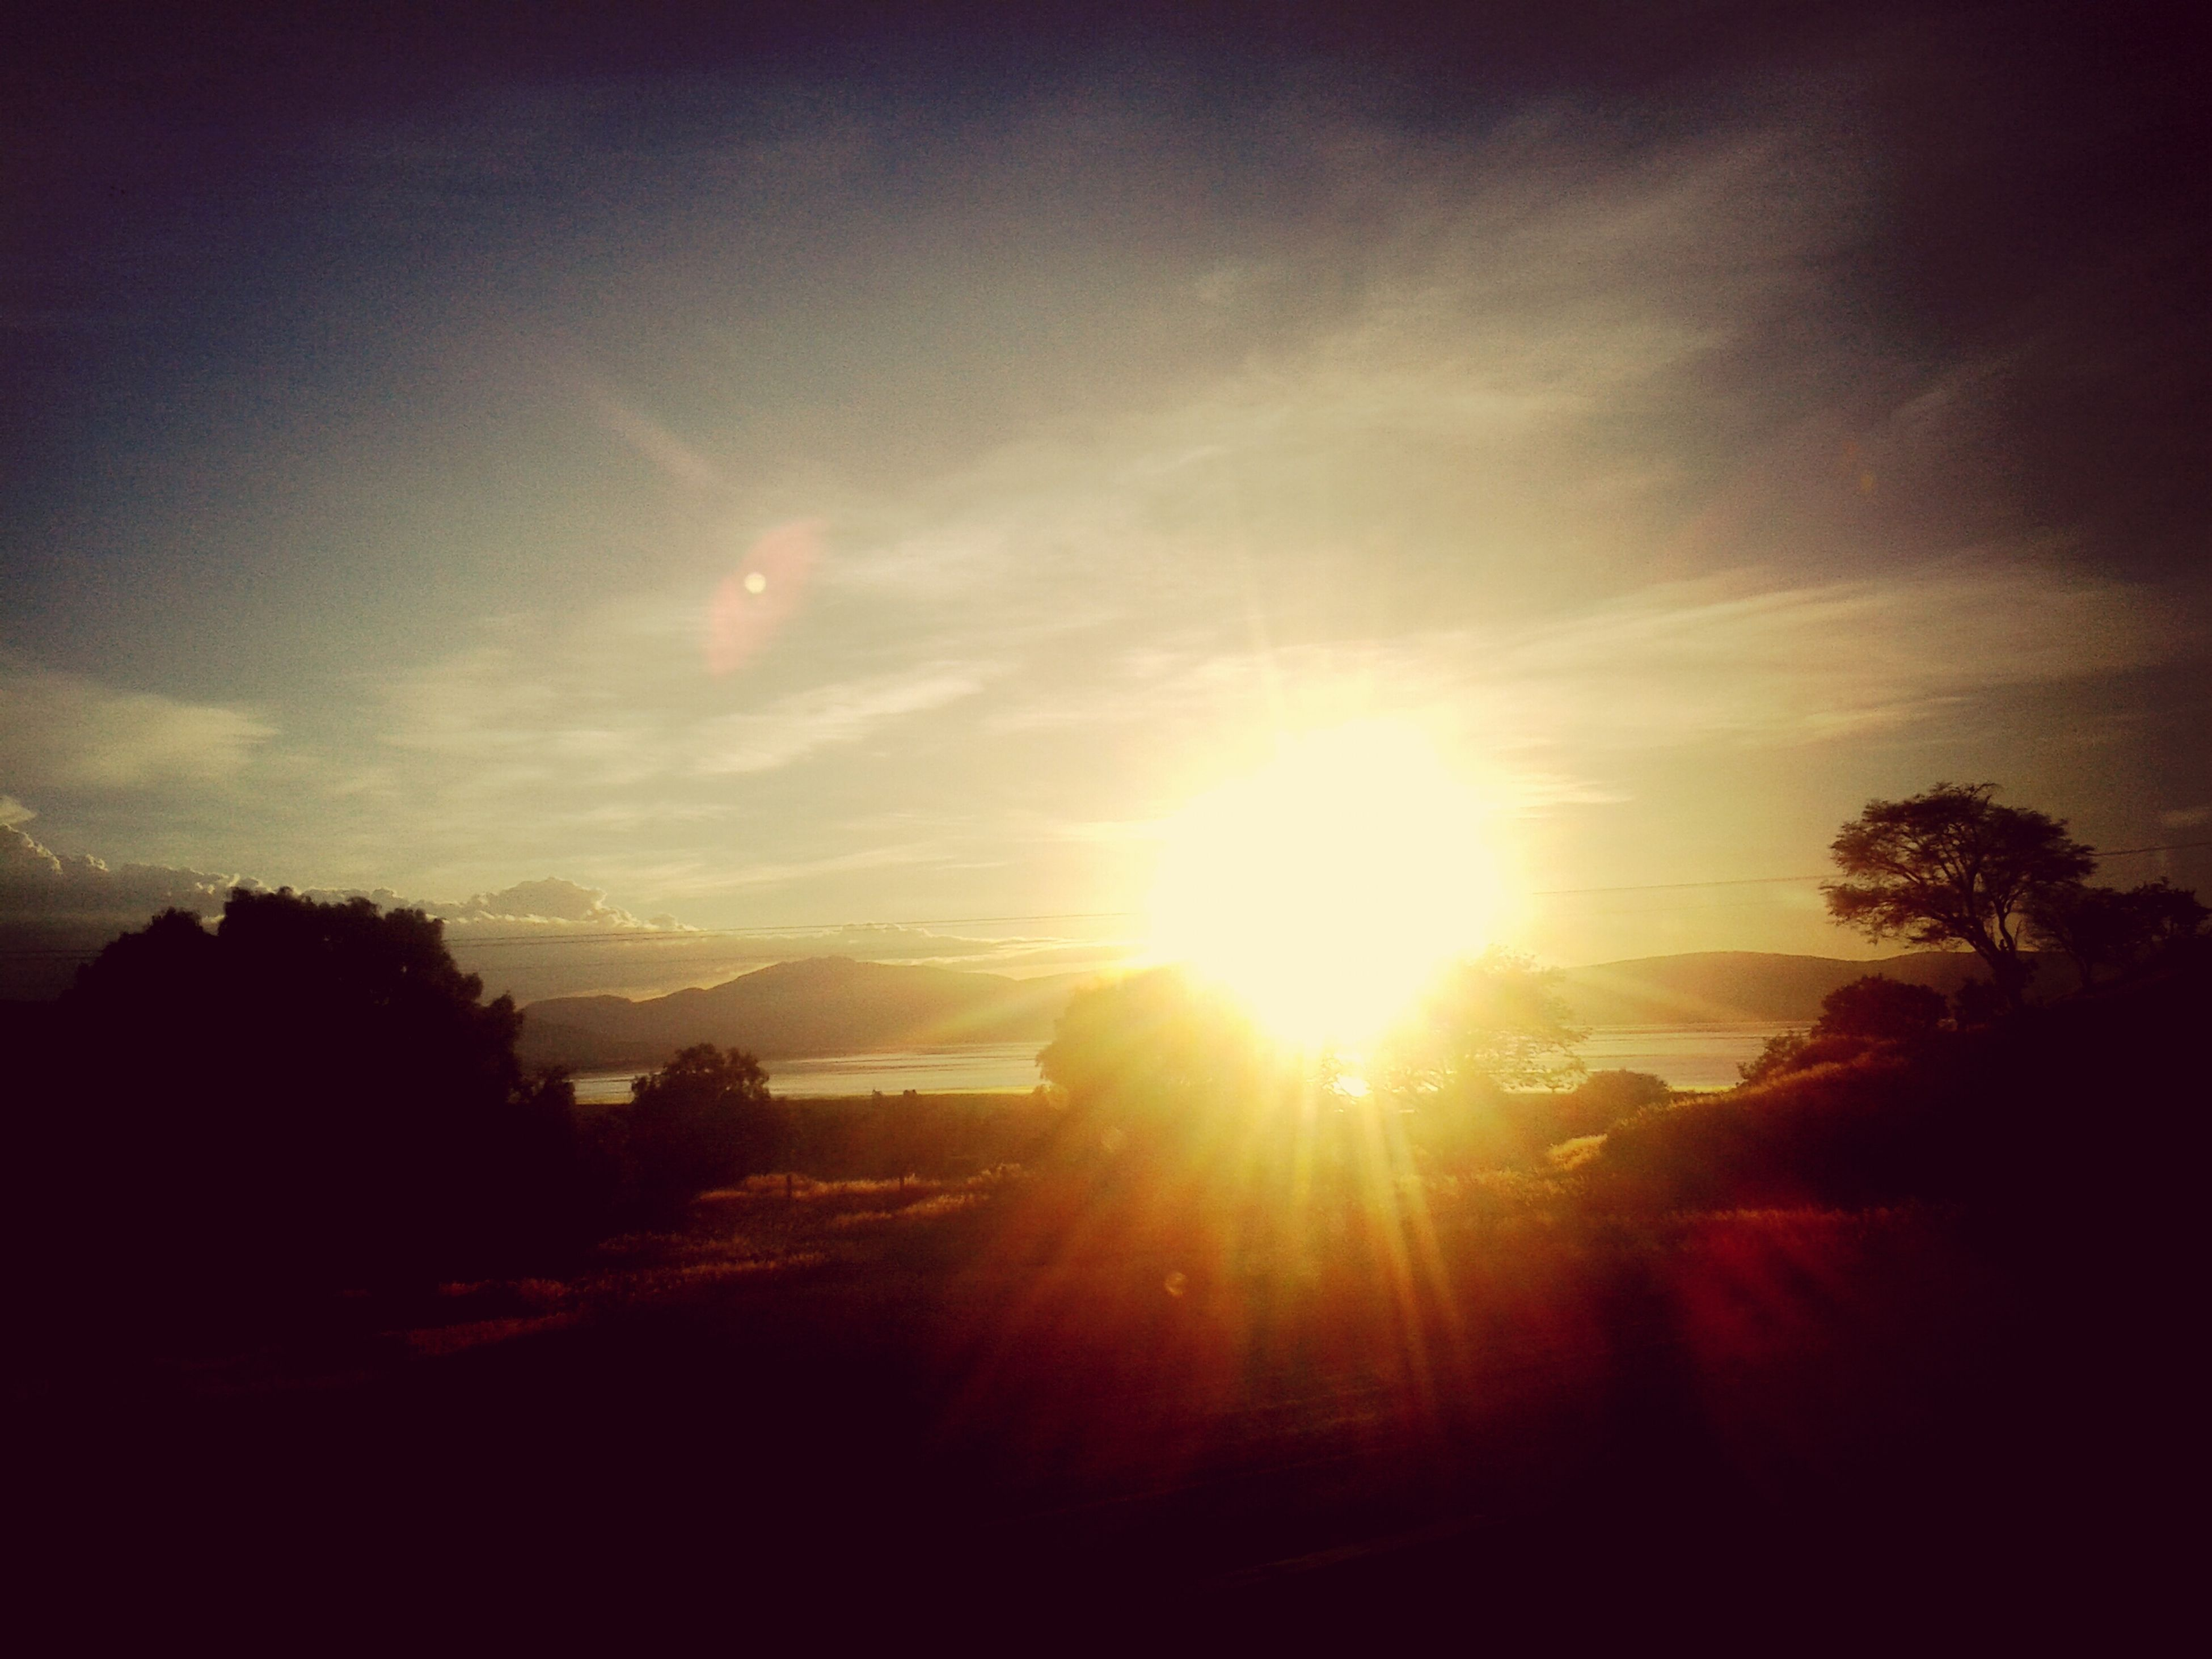 sunset, sun, silhouette, tree, sky, sunlight, sunbeam, lens flare, beauty in nature, tranquility, nature, scenics, tranquil scene, cloud - sky, built structure, building exterior, outdoors, architecture, no people, orange color